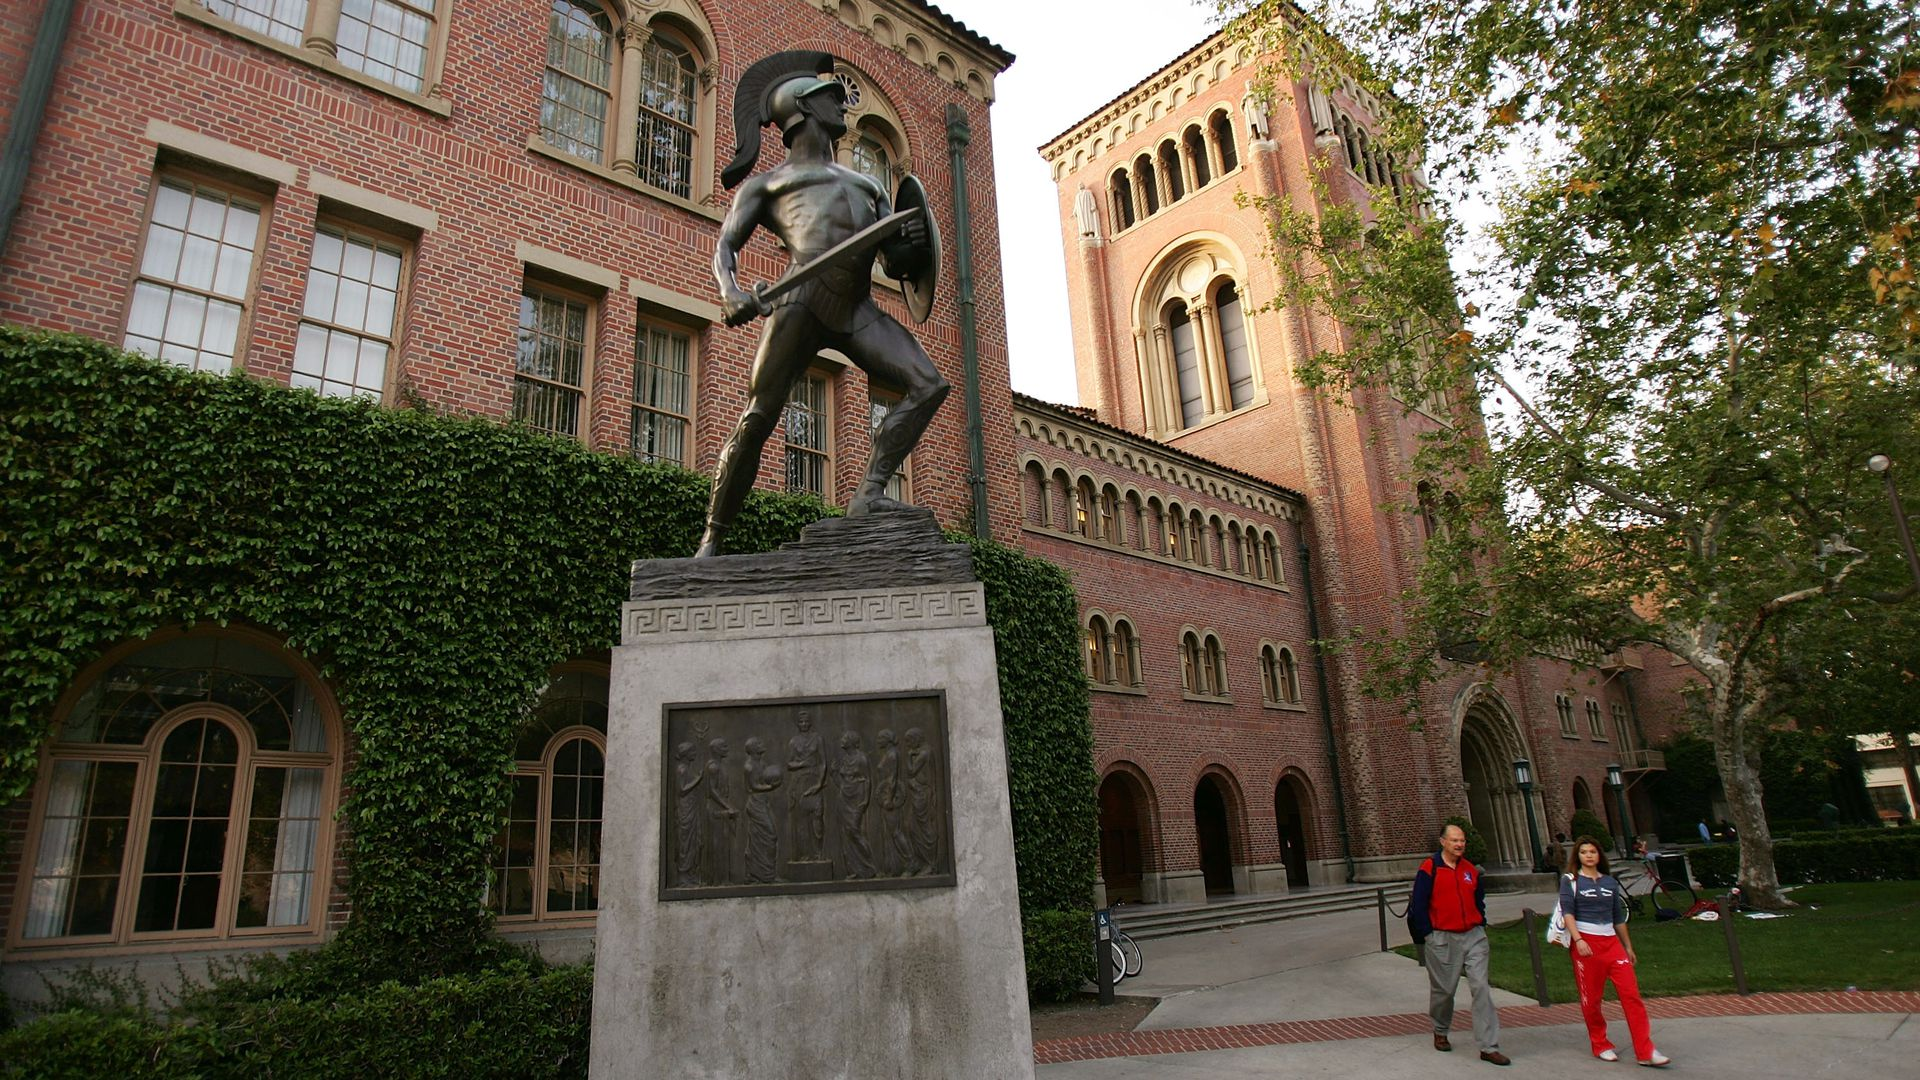 The University of Southern California campus in Los Angeles, California.